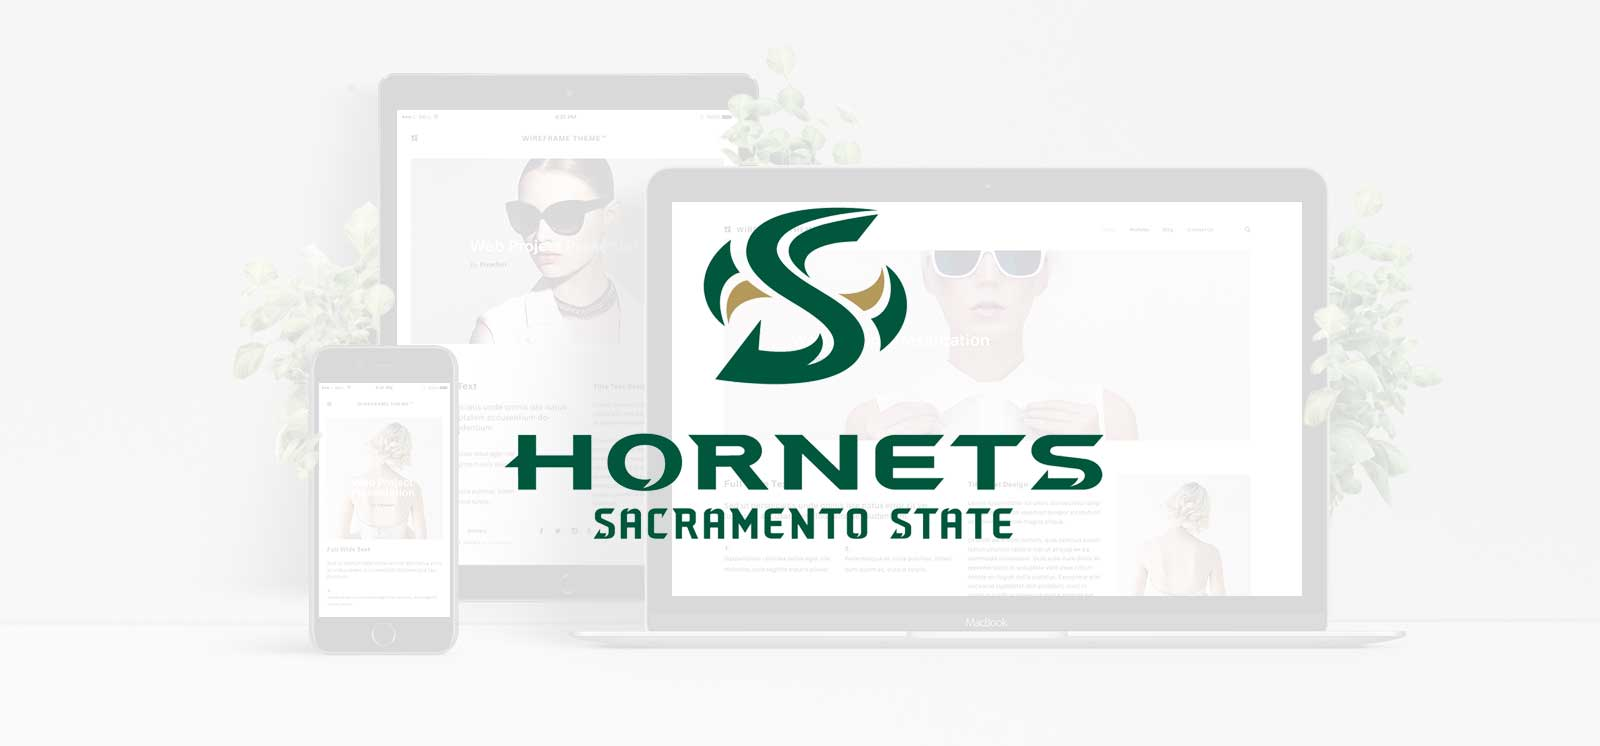 Sacramento State University Web Design Scholarship